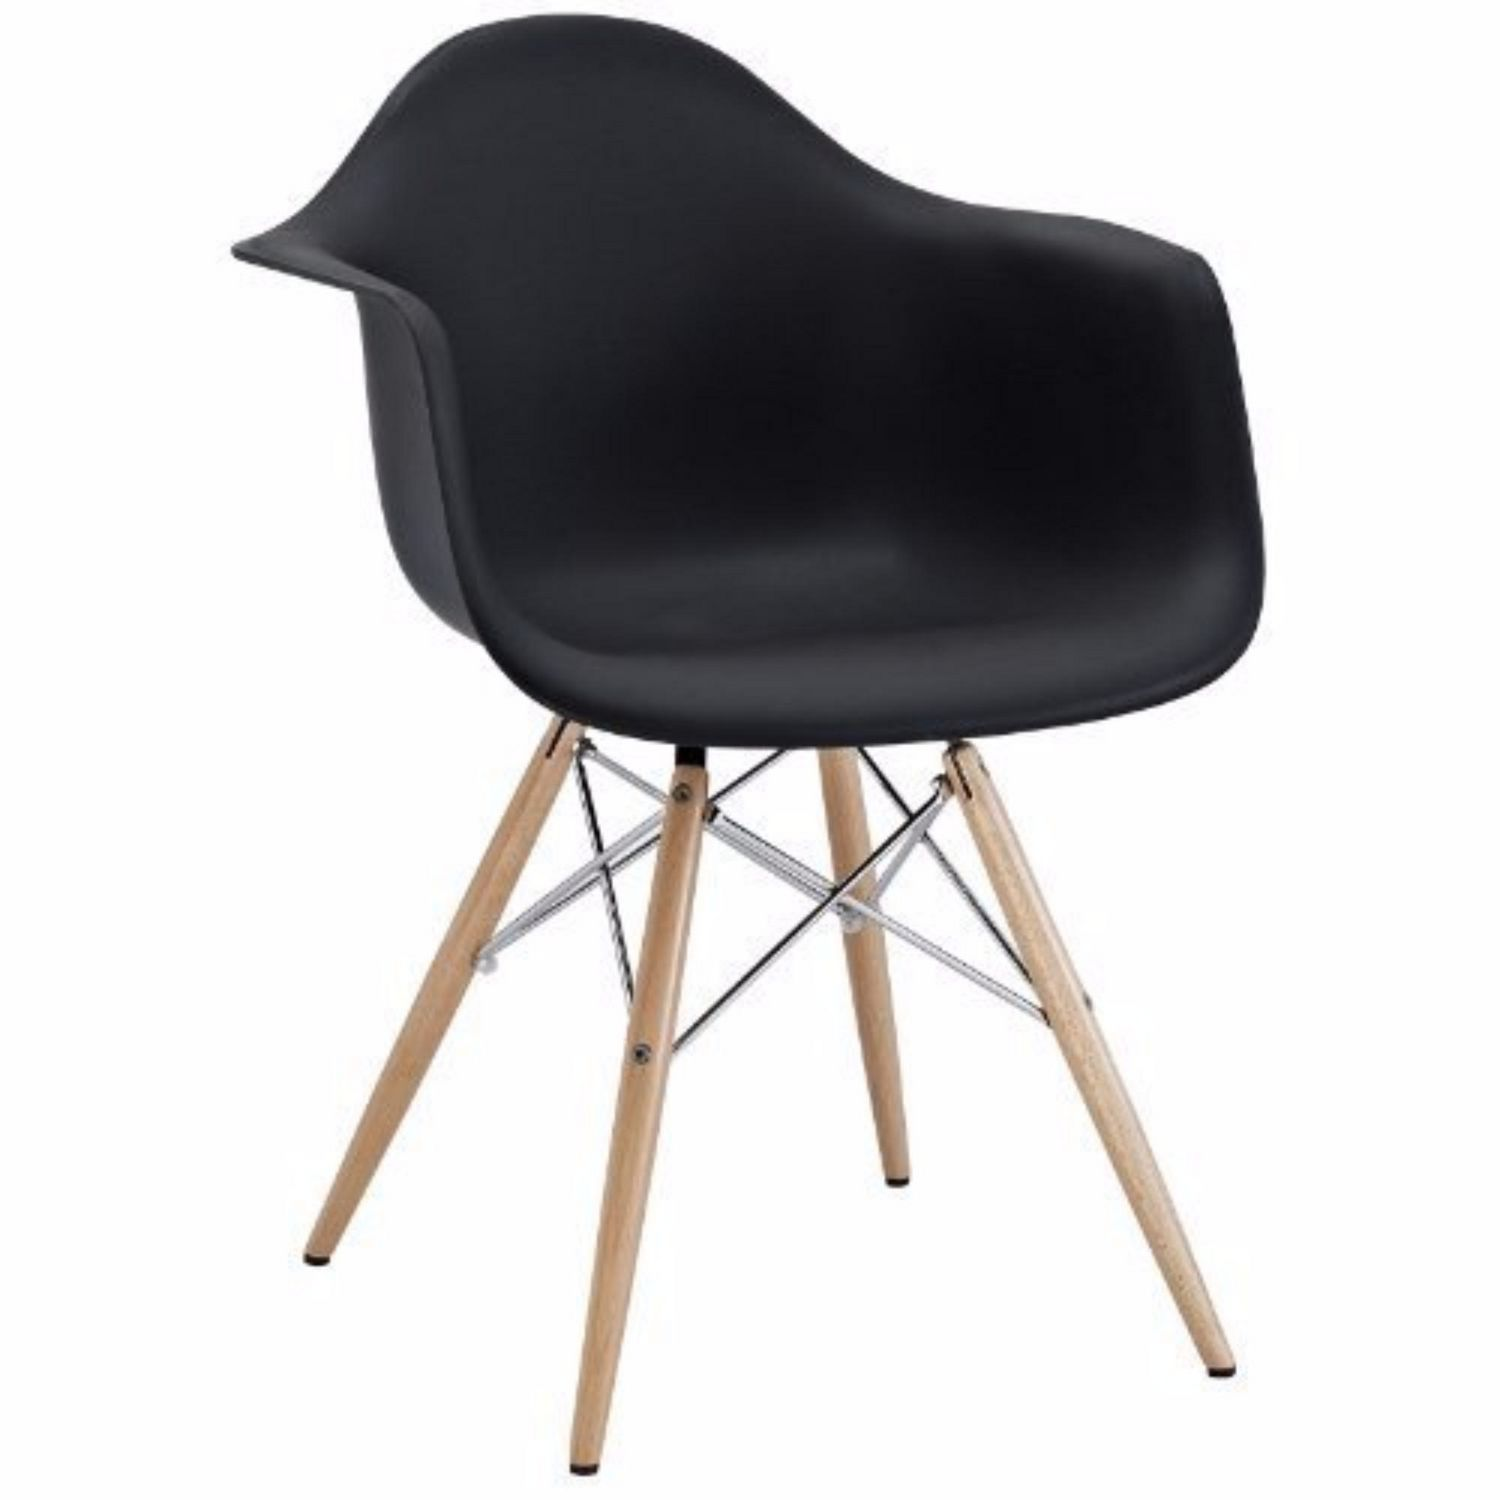 Eames Chair Dar Nicer Furniture Black Wooden Legs Eames Dar Chair